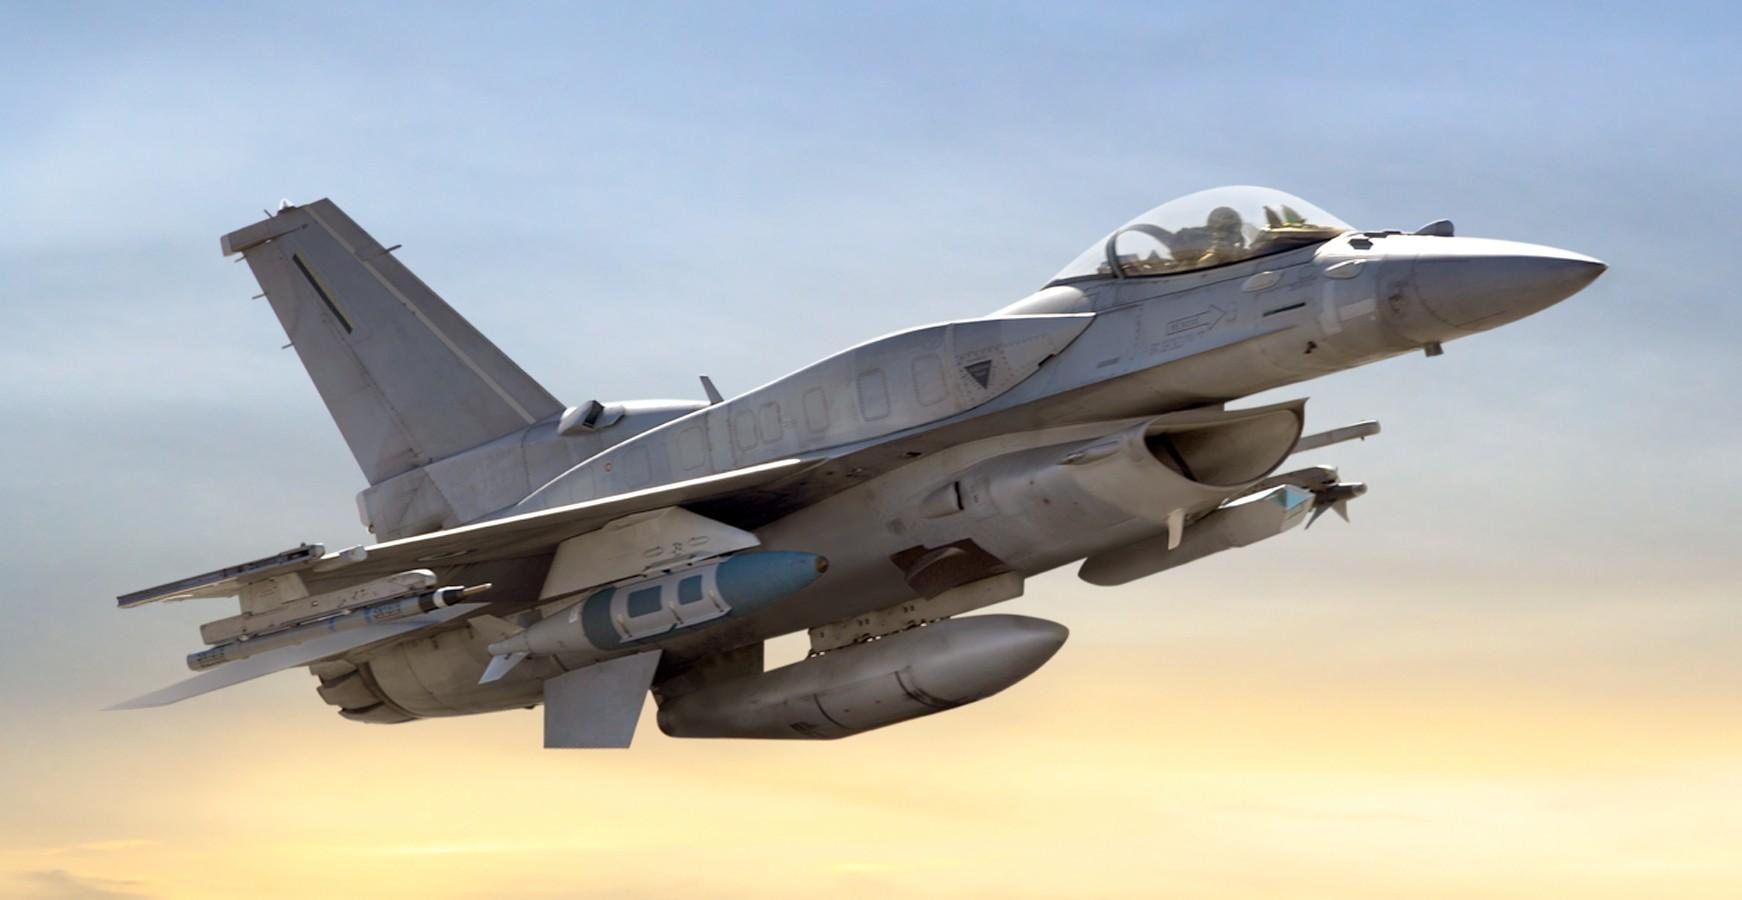 The U.S. Air Force has awarded BAE Systems with a contract worth up to $600 million to supply support equipment for international F-16s